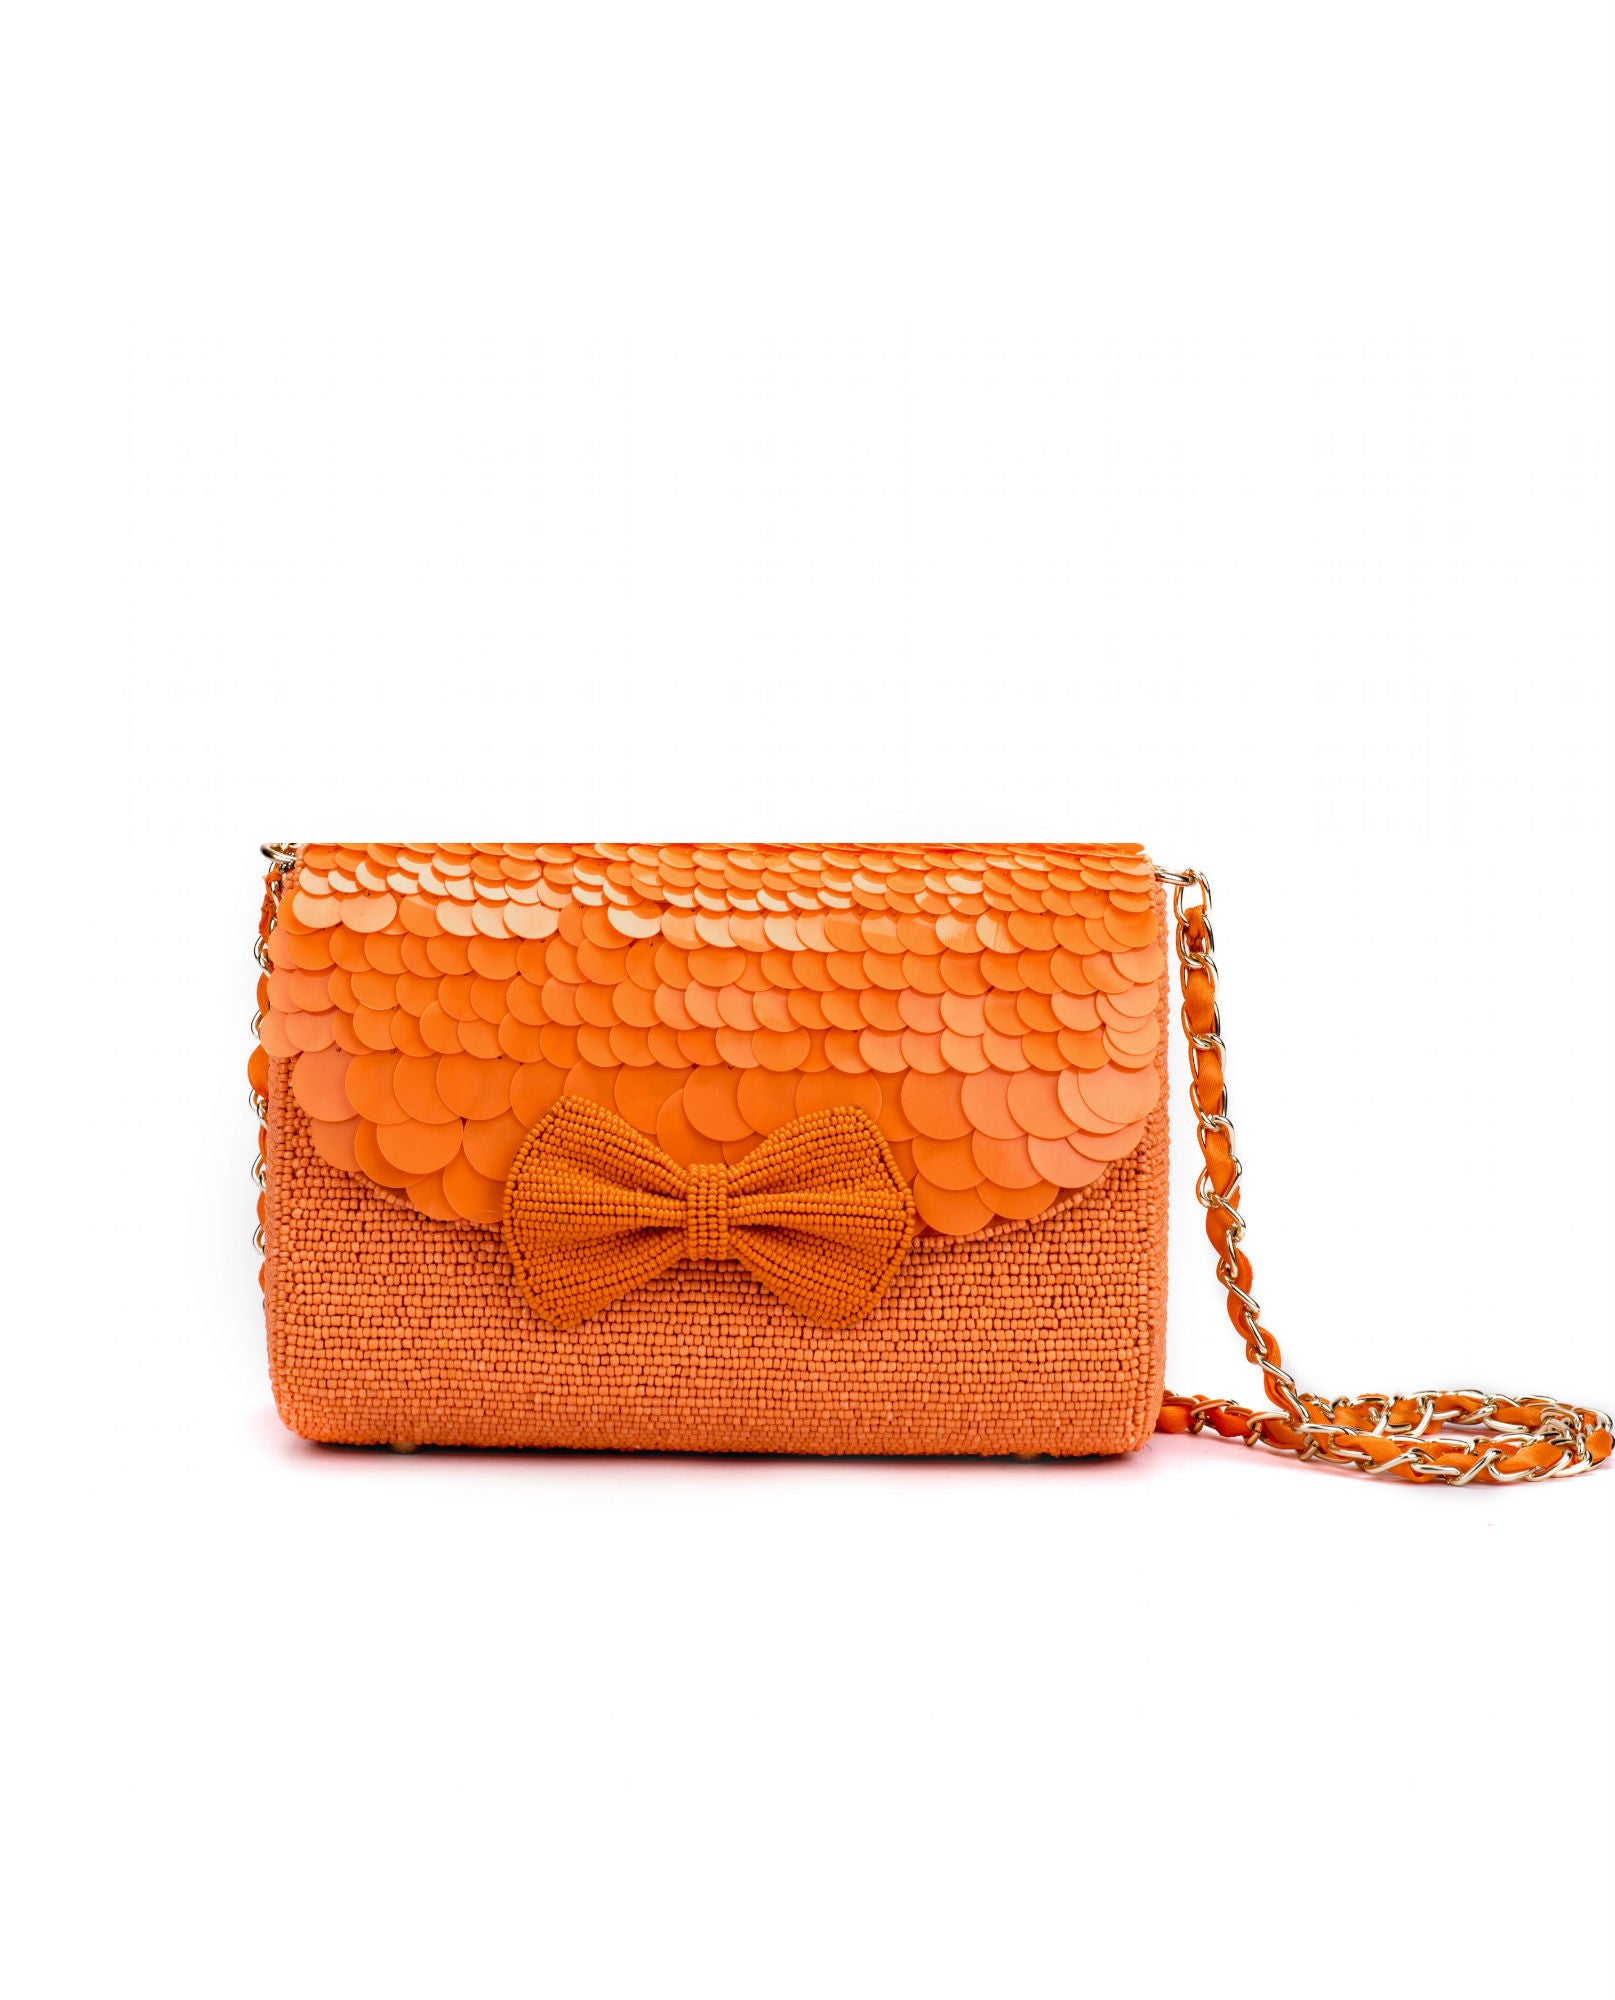 ruche & hues - Angel Glow Baguette Orange Hand Beaded Bag- The Velvet Closet - 1